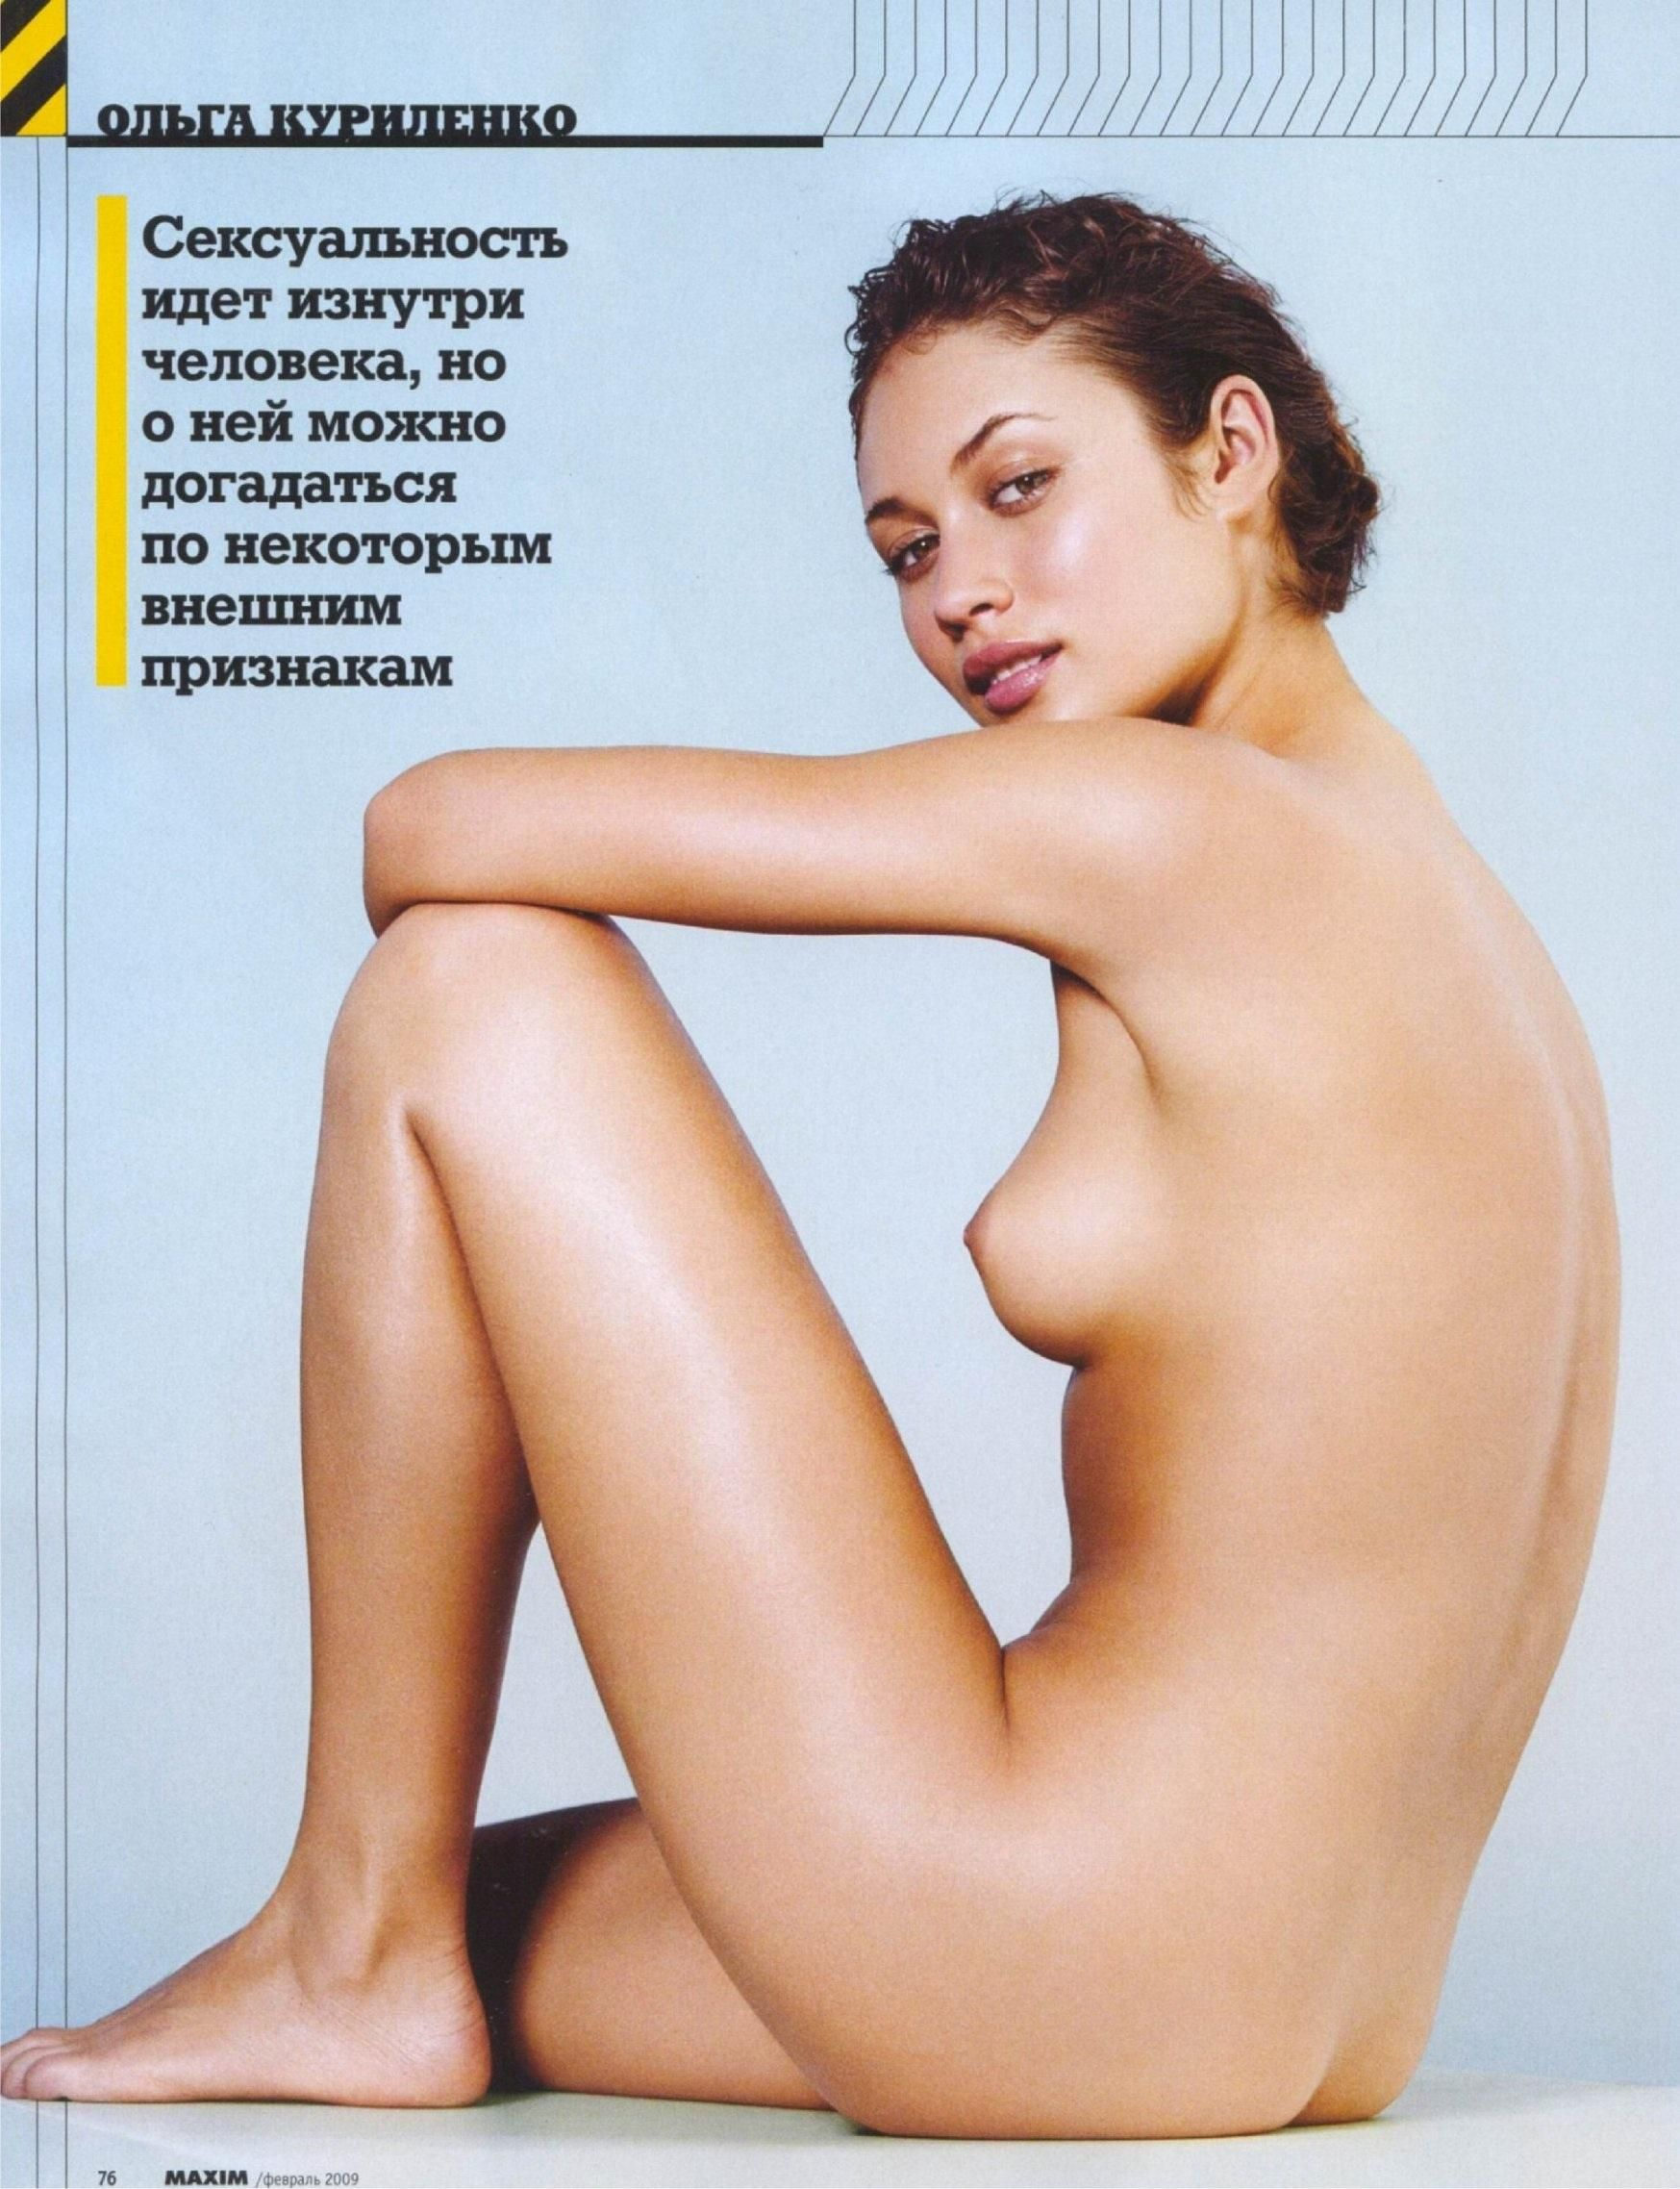 Valuable Olga kurylenko fake sex have removed